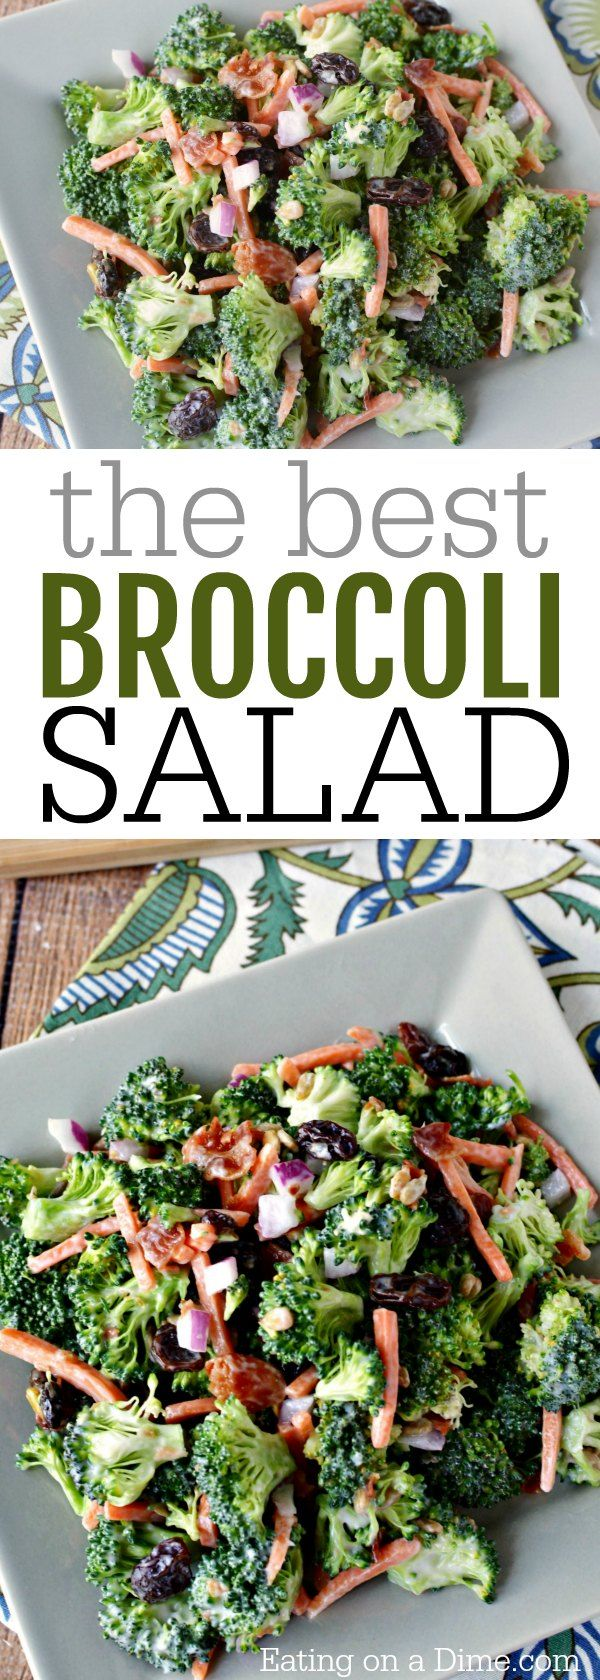 You can find the best broccoli salad recipe here. It's crunchy, sweet and salty all combined in one delicious salad. Everyone loves this creamy dish.